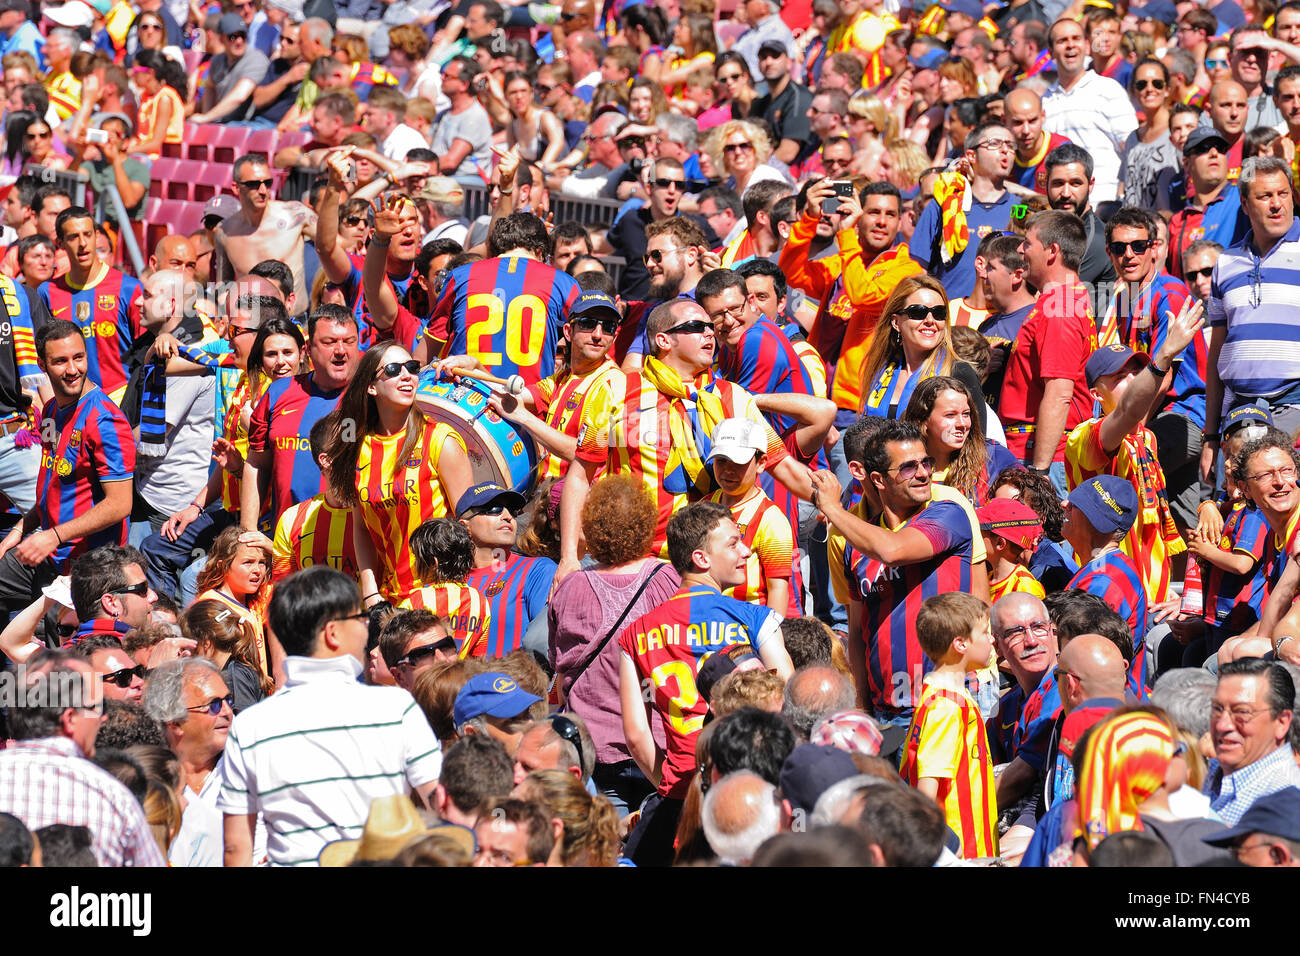 BARCELONA - MAR 26: The Boixos Nois, radical F.C. Barcelona supporters at the Camp Nou on the Spanish League on - Stock Image